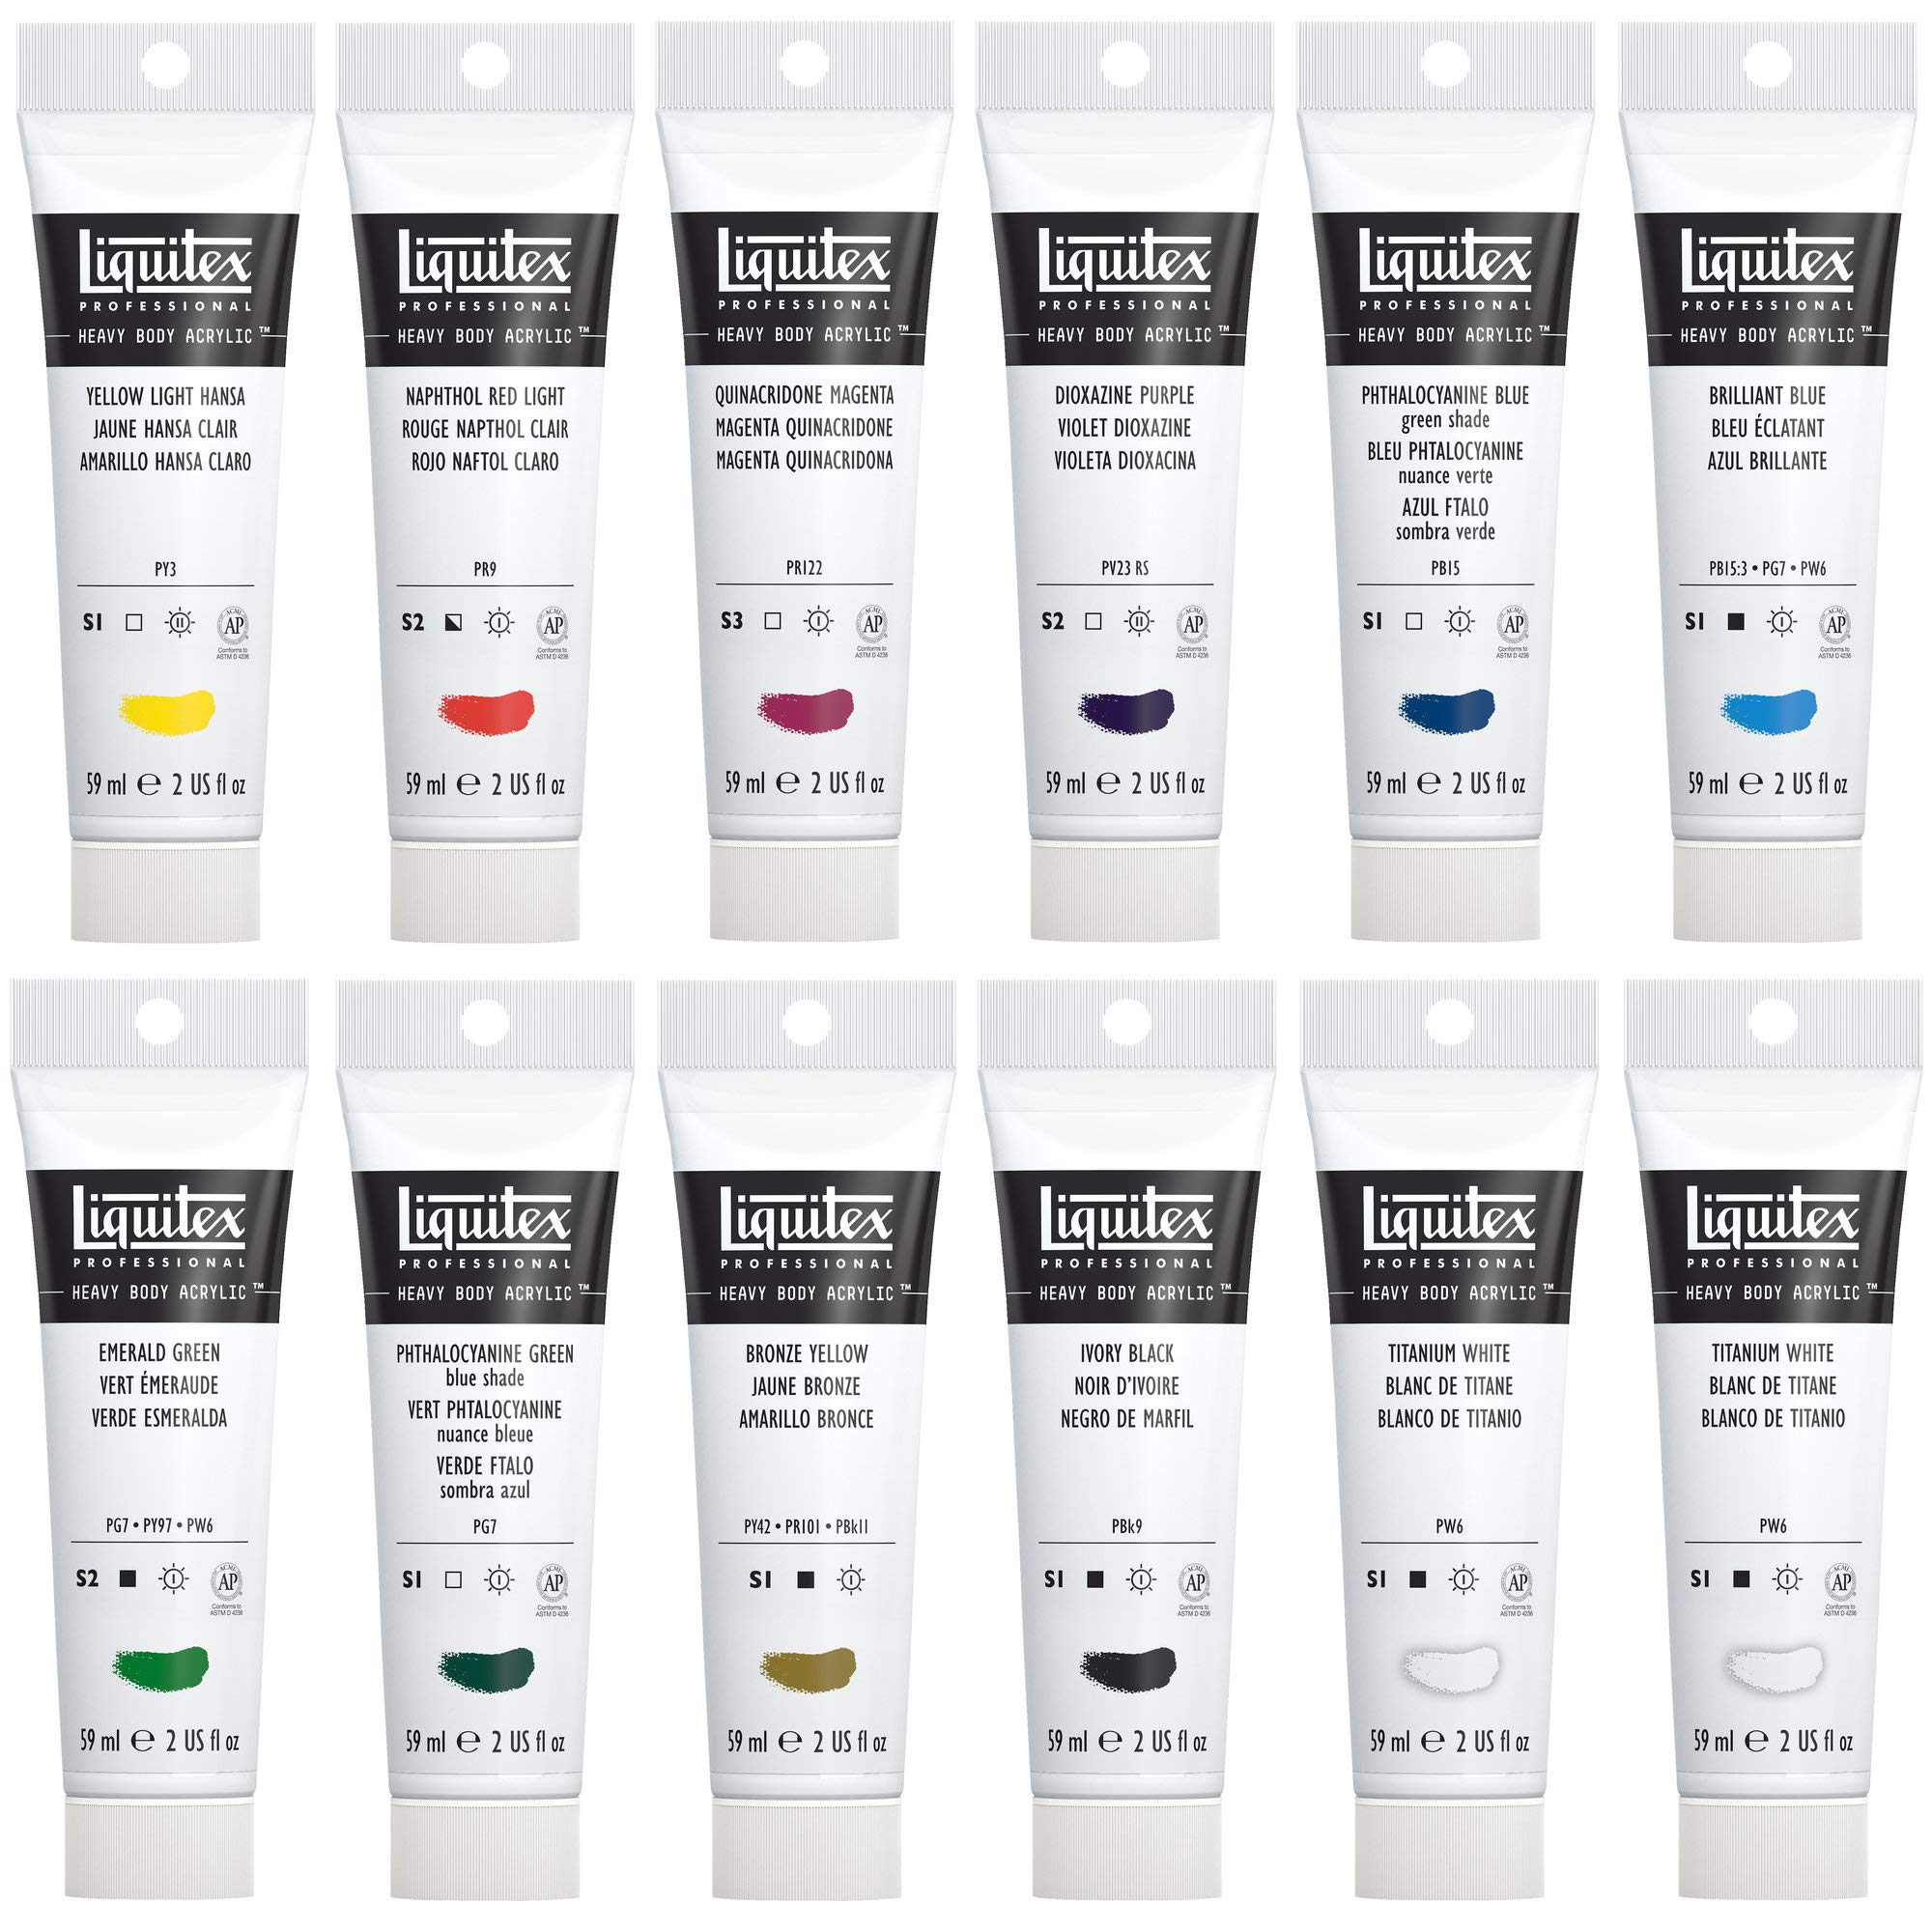 Liquitex Professional Heavy Body Acrylic Paint Classic Set, 12 Colors